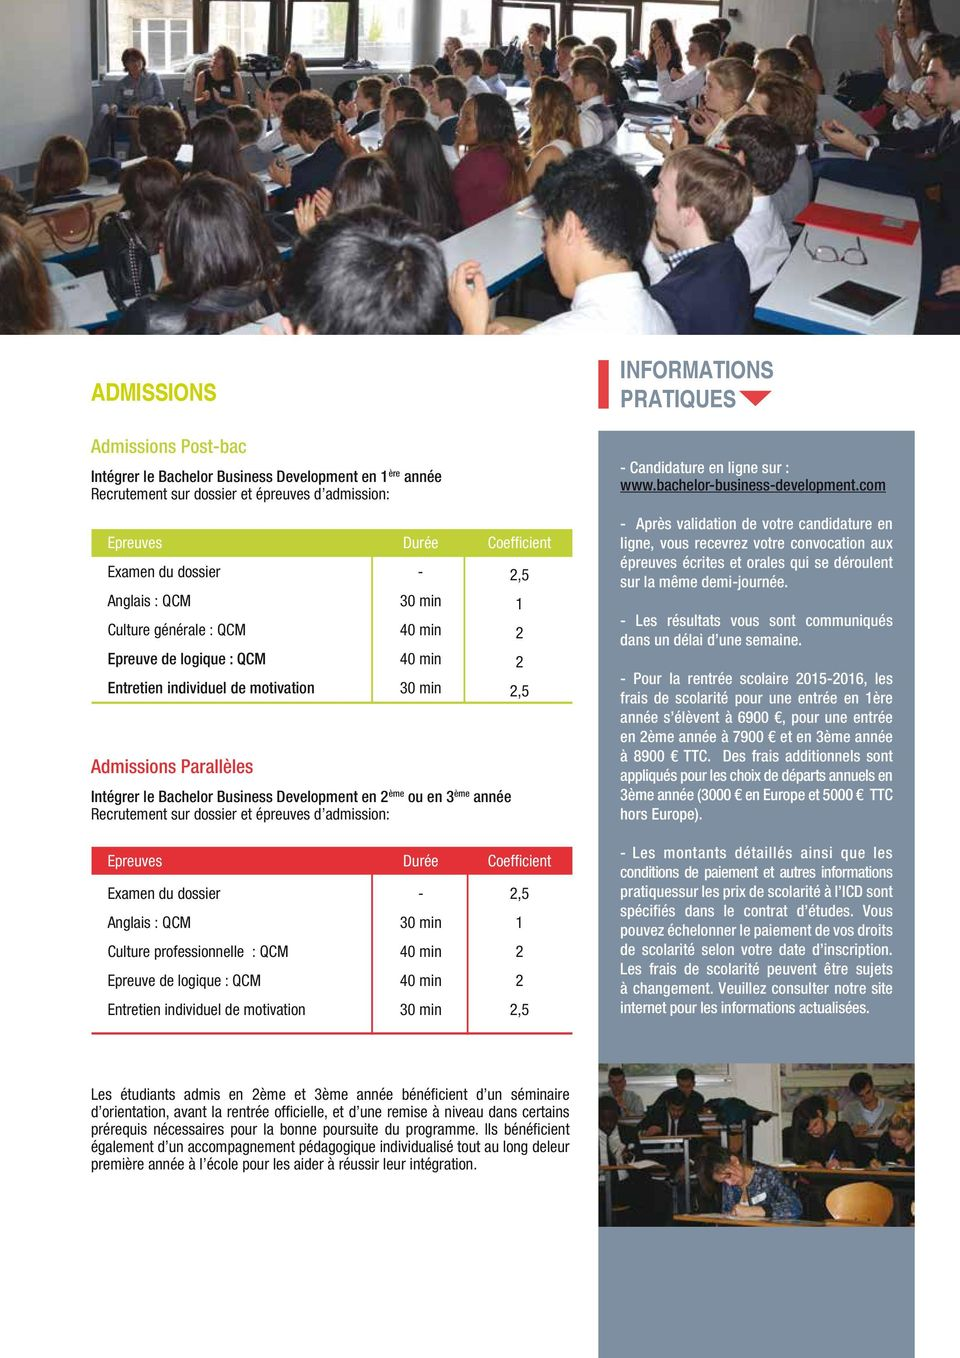 admission: Coefficient,5 1,5 INFORMATIONS PRATIQUES - Candidature en ligne sur : www.bachelor-business-development.